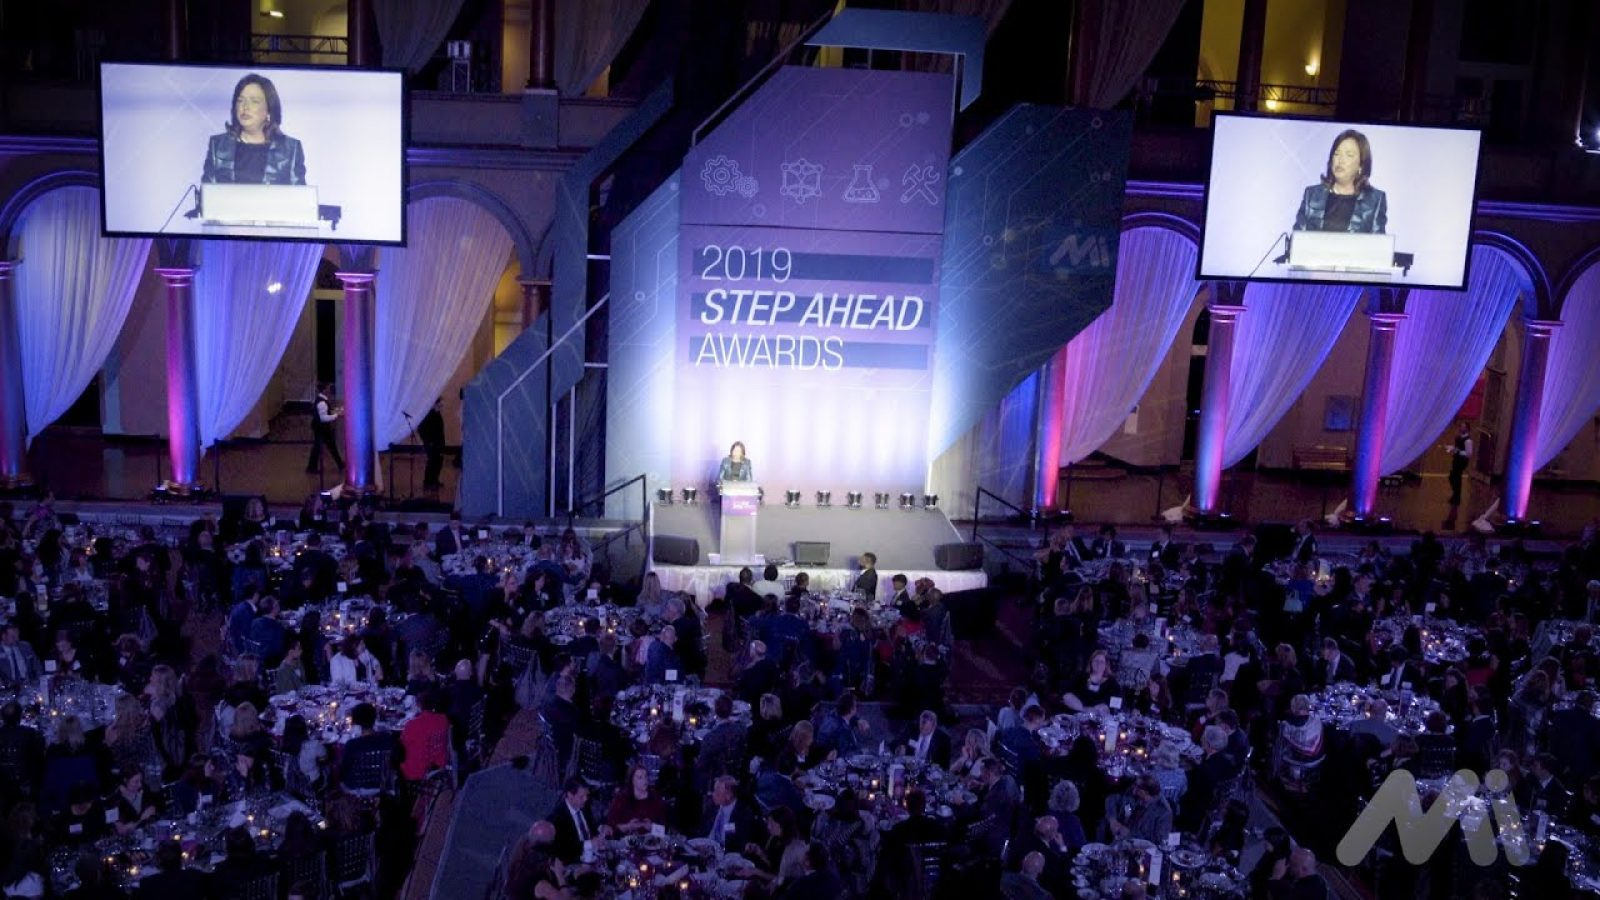 STEP ahead awards stage photograph